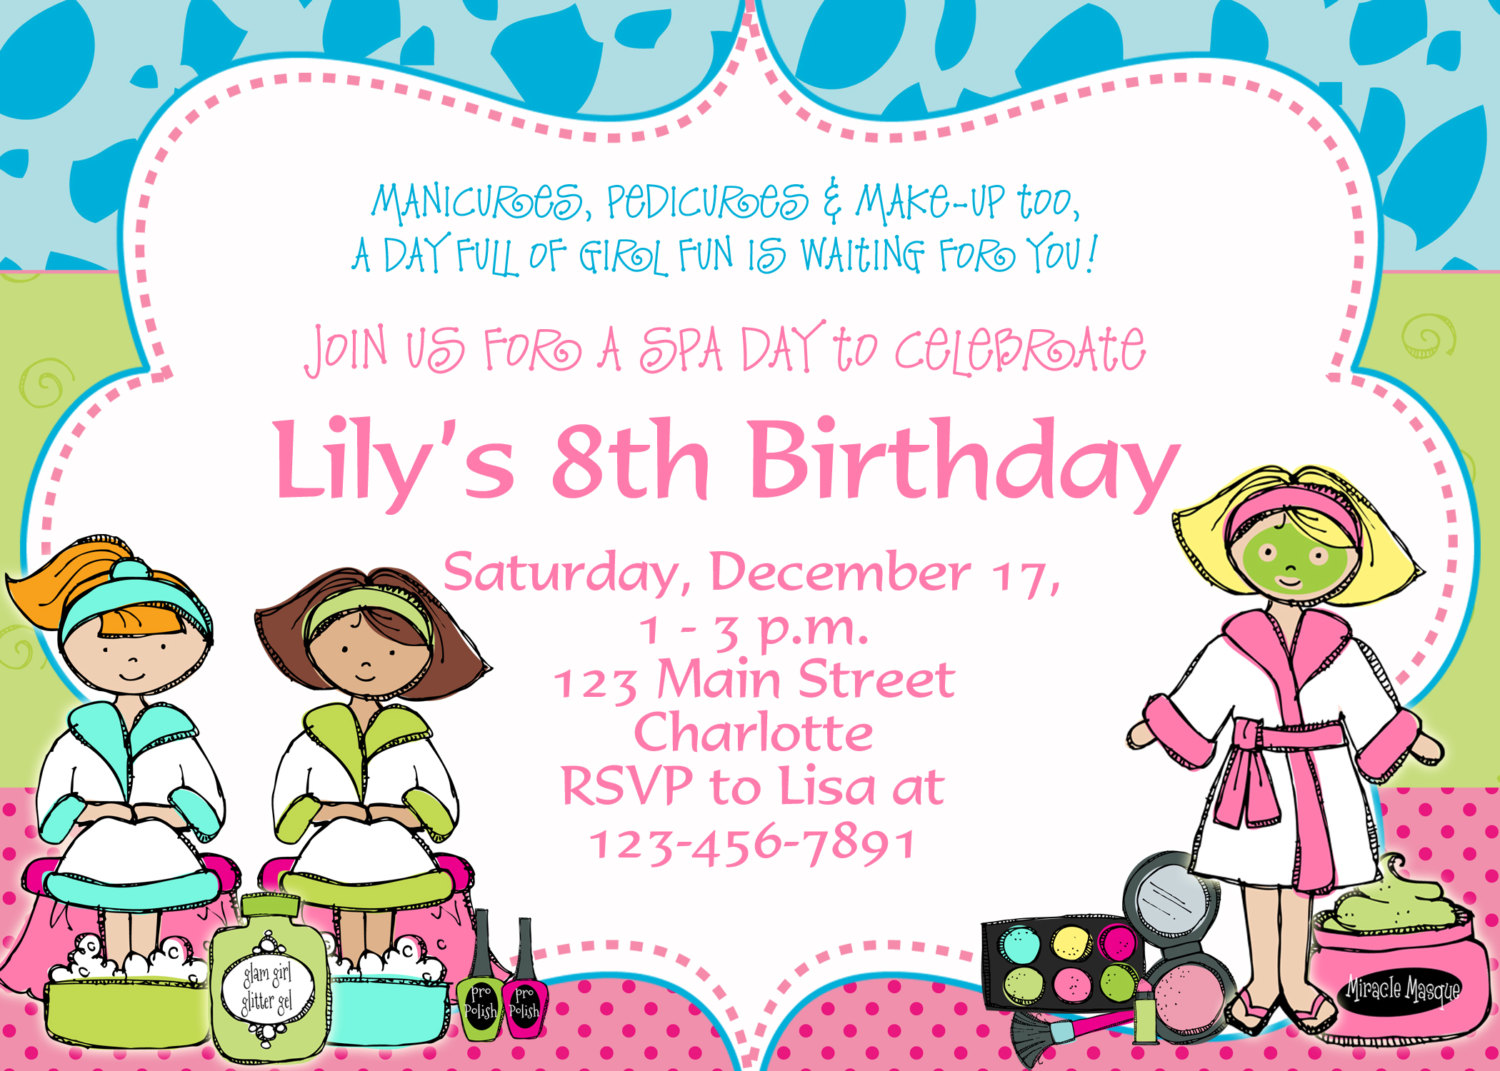 design birthday party invitations ; Elegant-Birthday-Party-Invitations-As-Birthday-Invitation